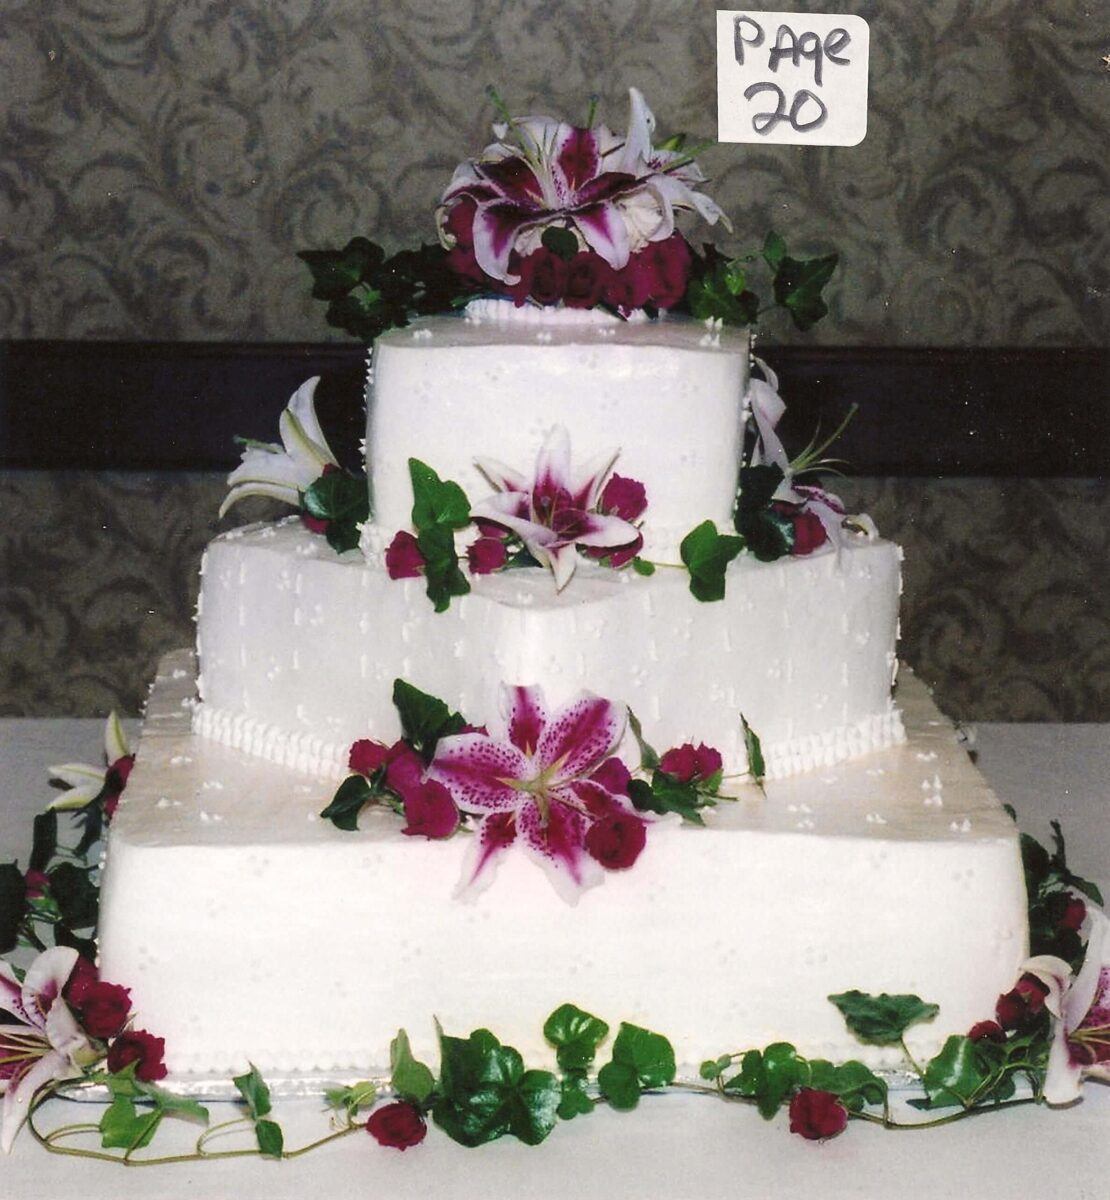 White Frosted 3 Tier Wedding Cake with Pink Lillies and Greenery